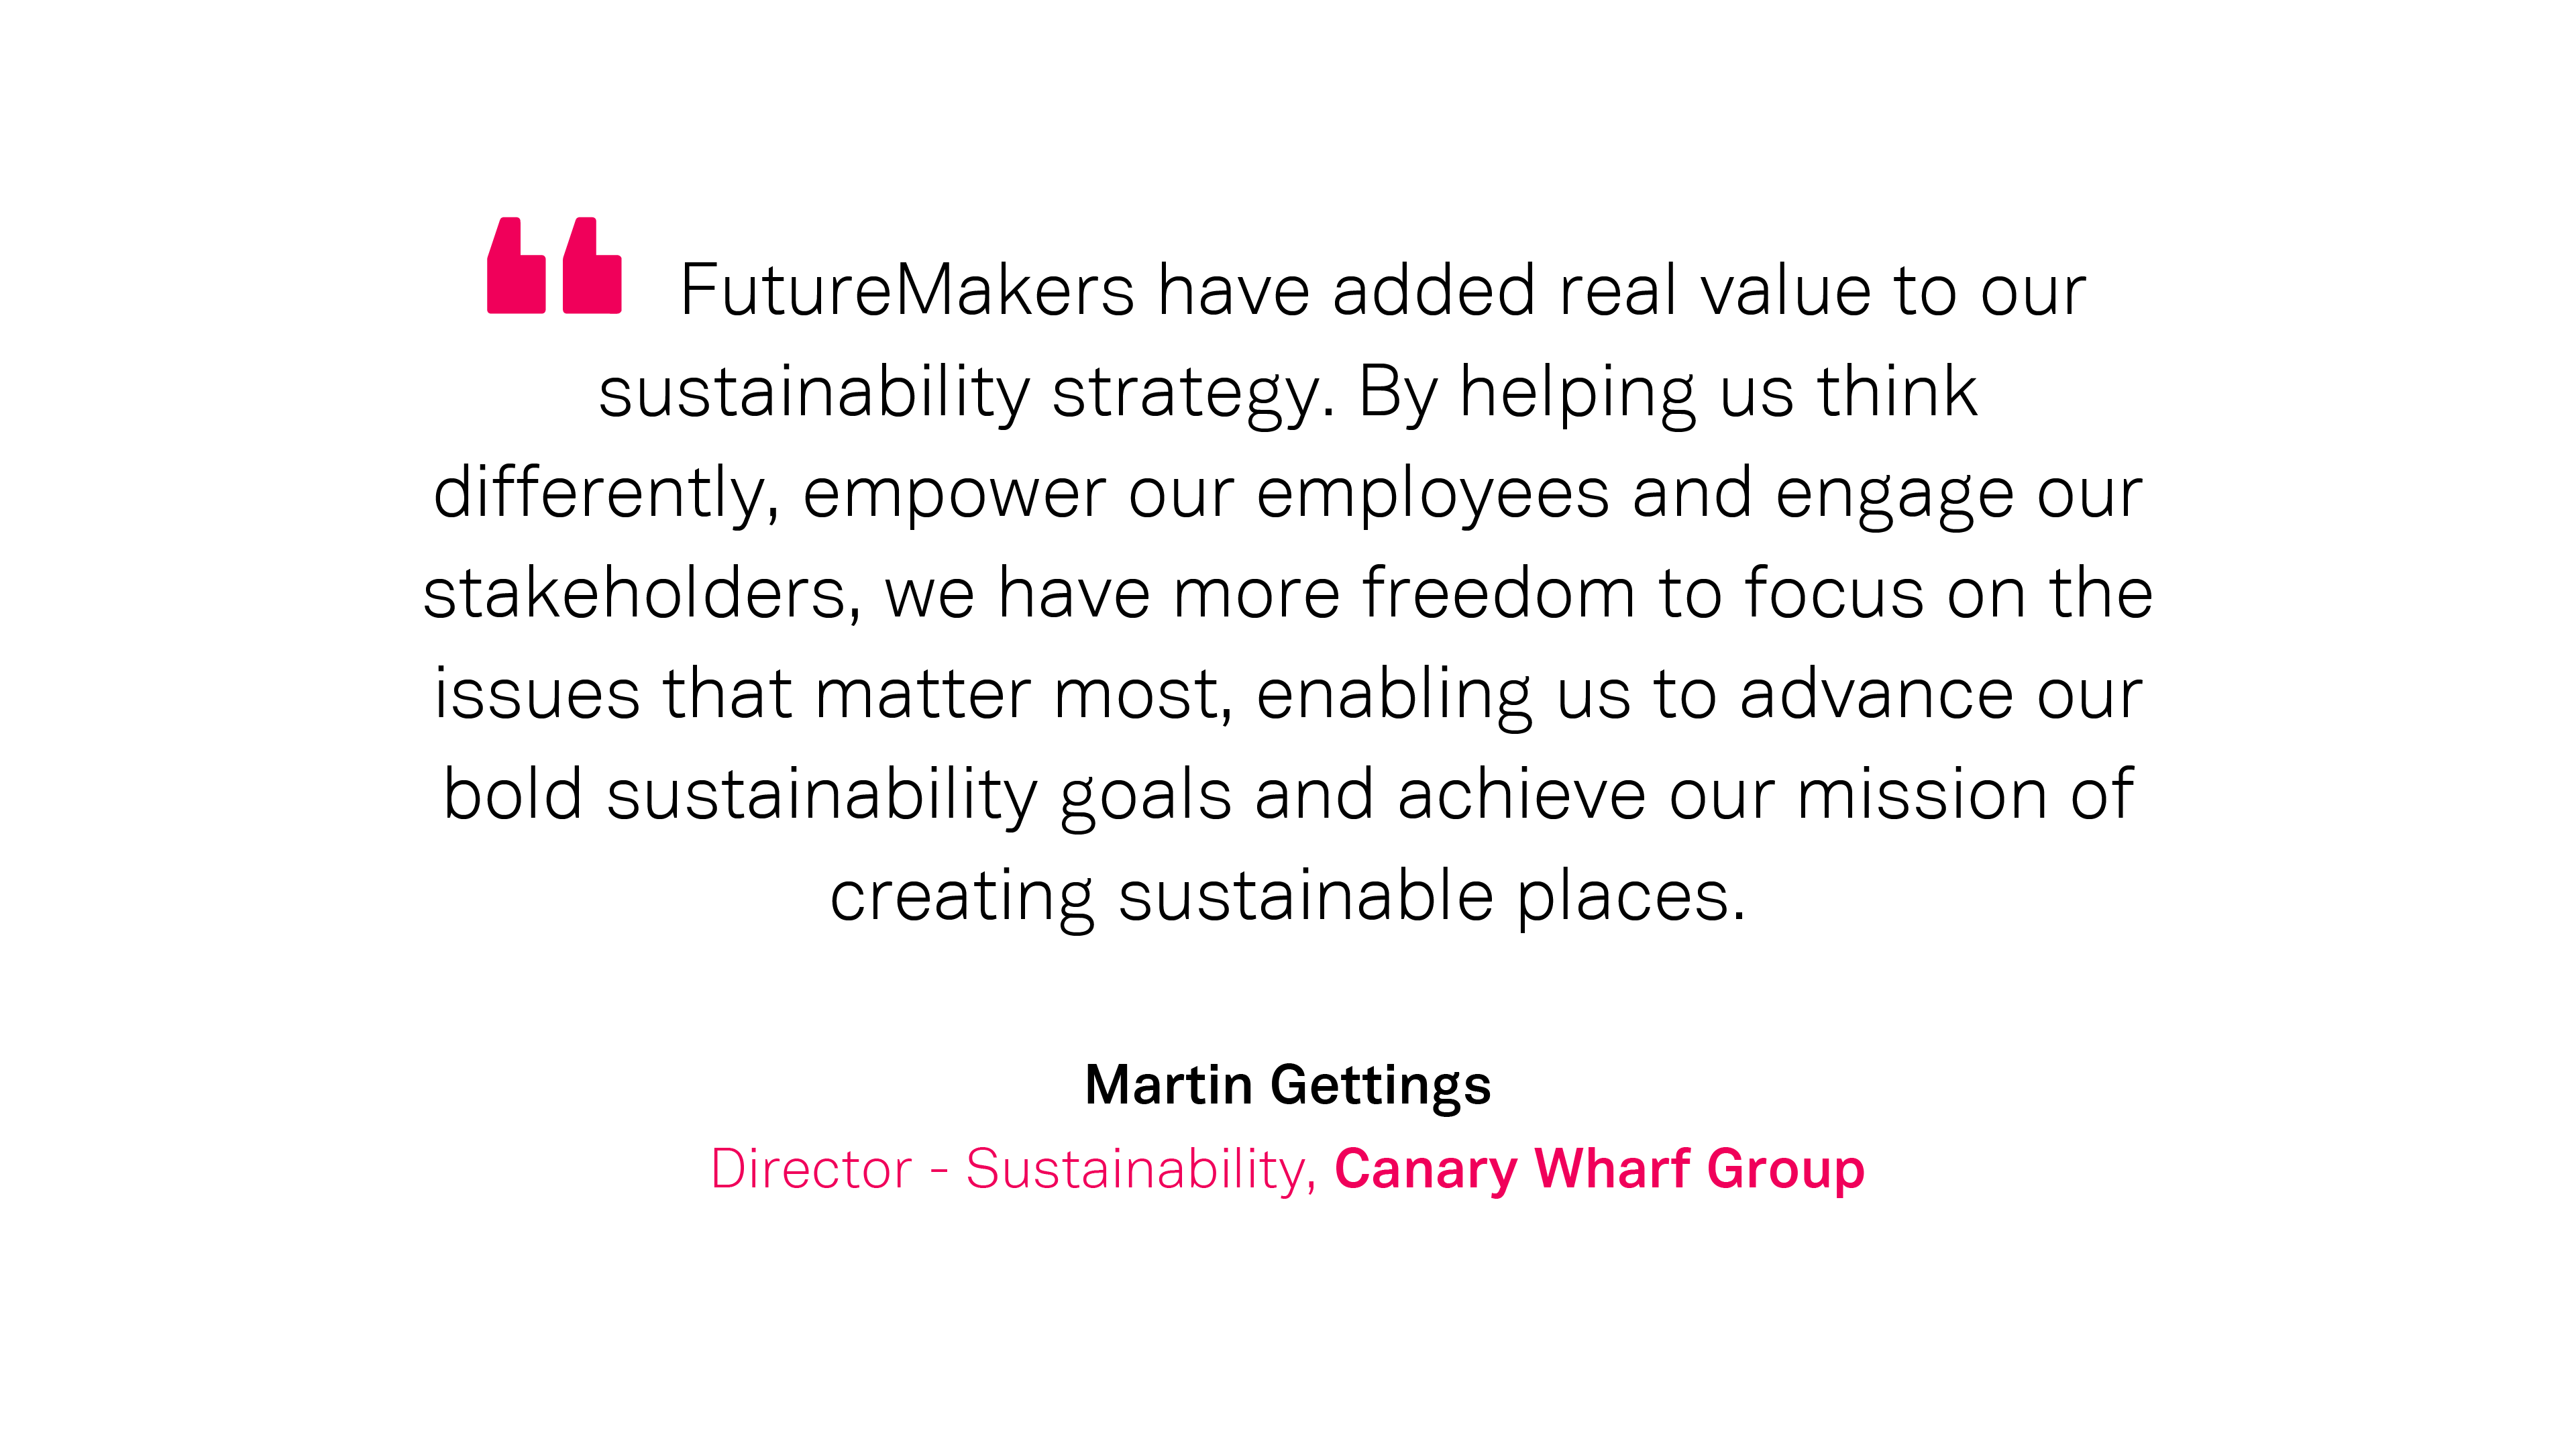 Our Work: Martin Gettings, CWG